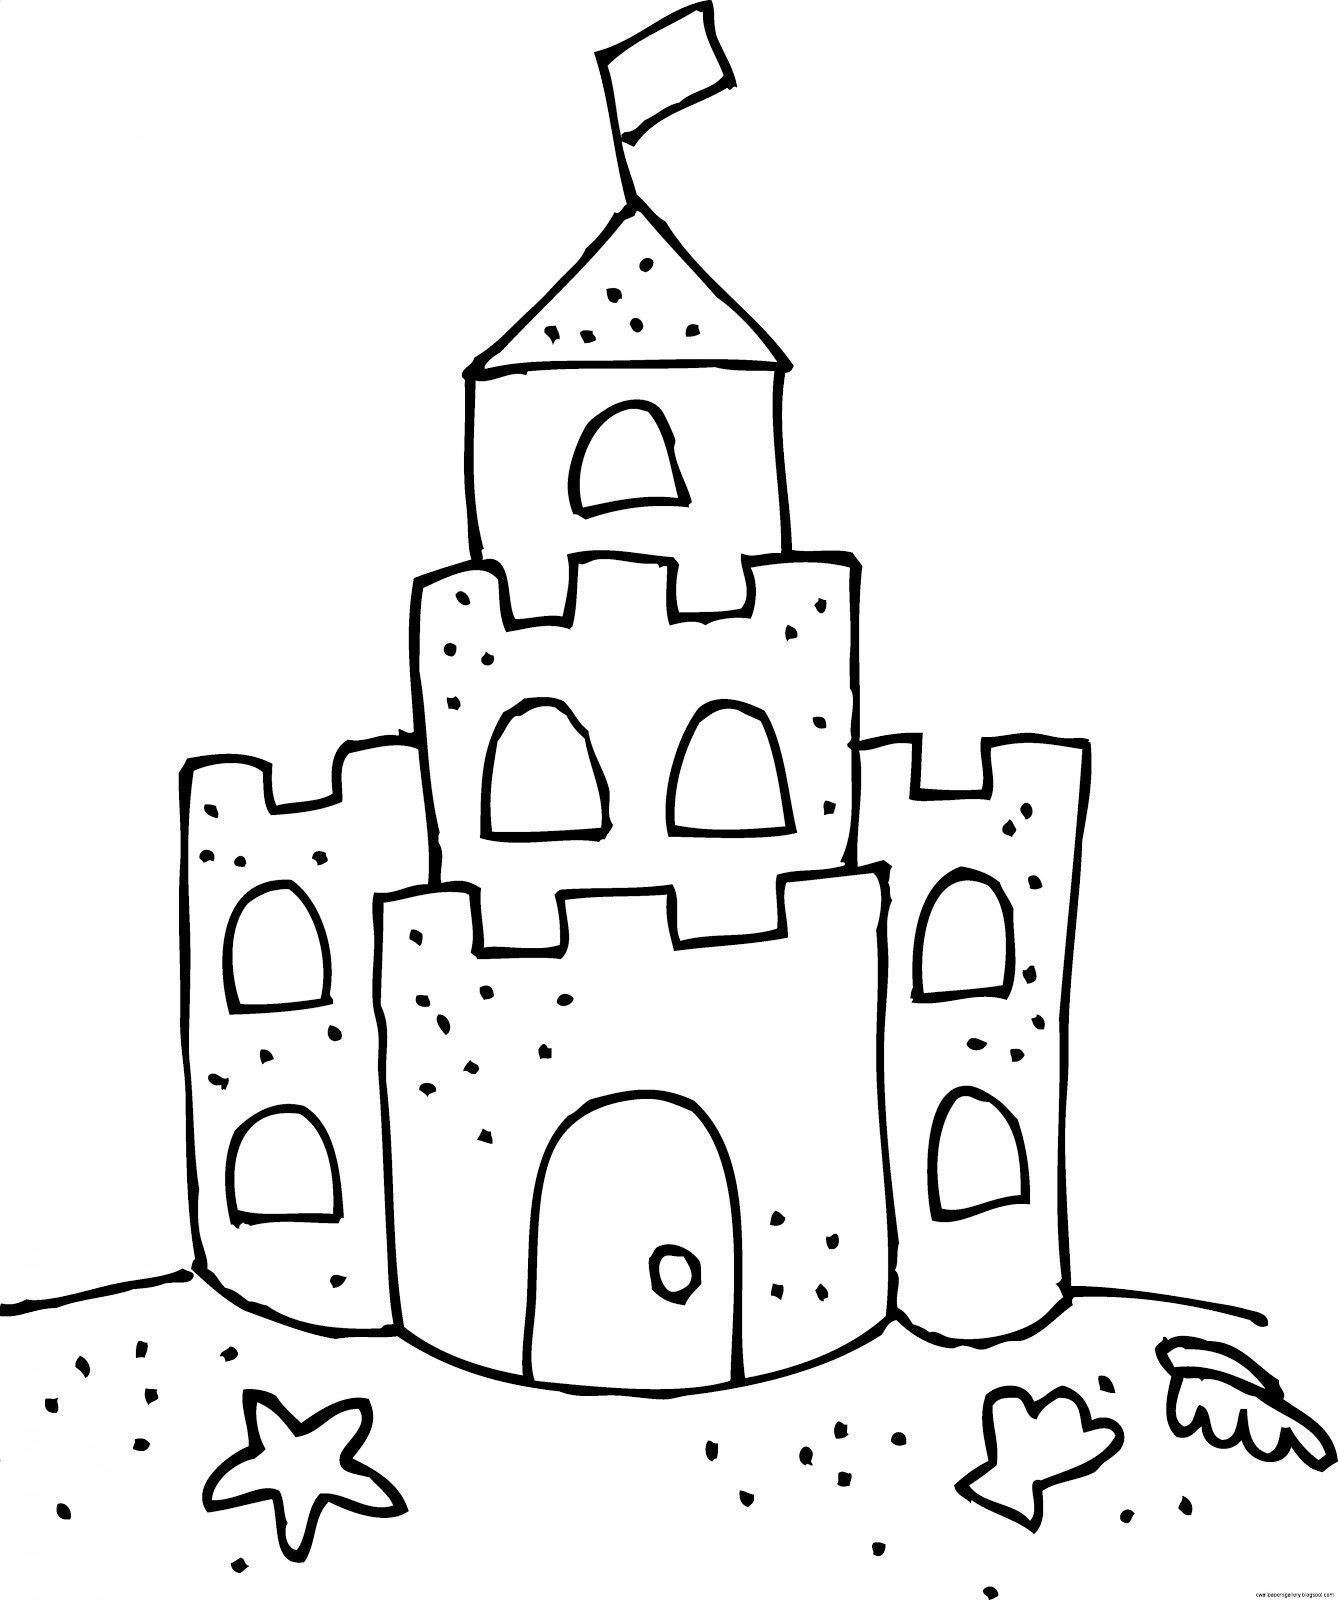 coloring pages of a castle pin by jen segovia shafik on print castle coloring page castle pages coloring a of